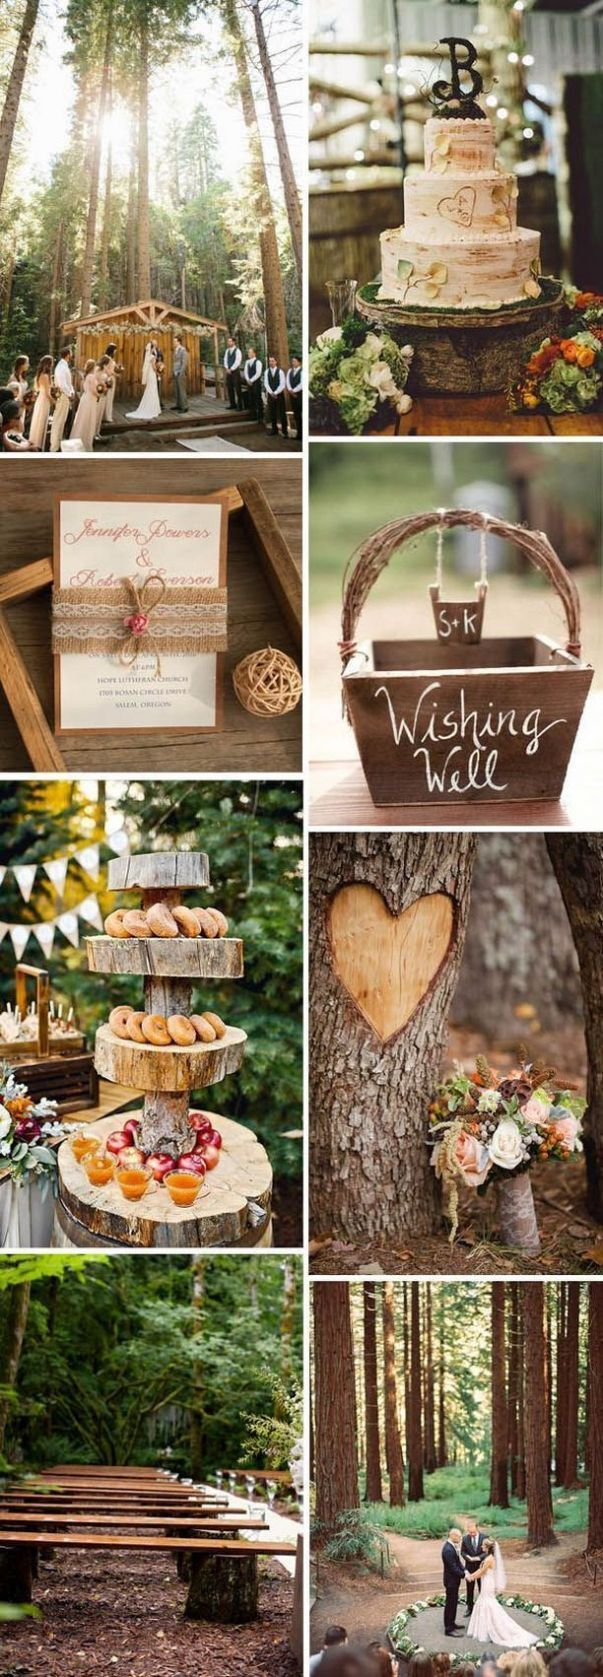 Enchanted forest decorations for wedding ideas 35